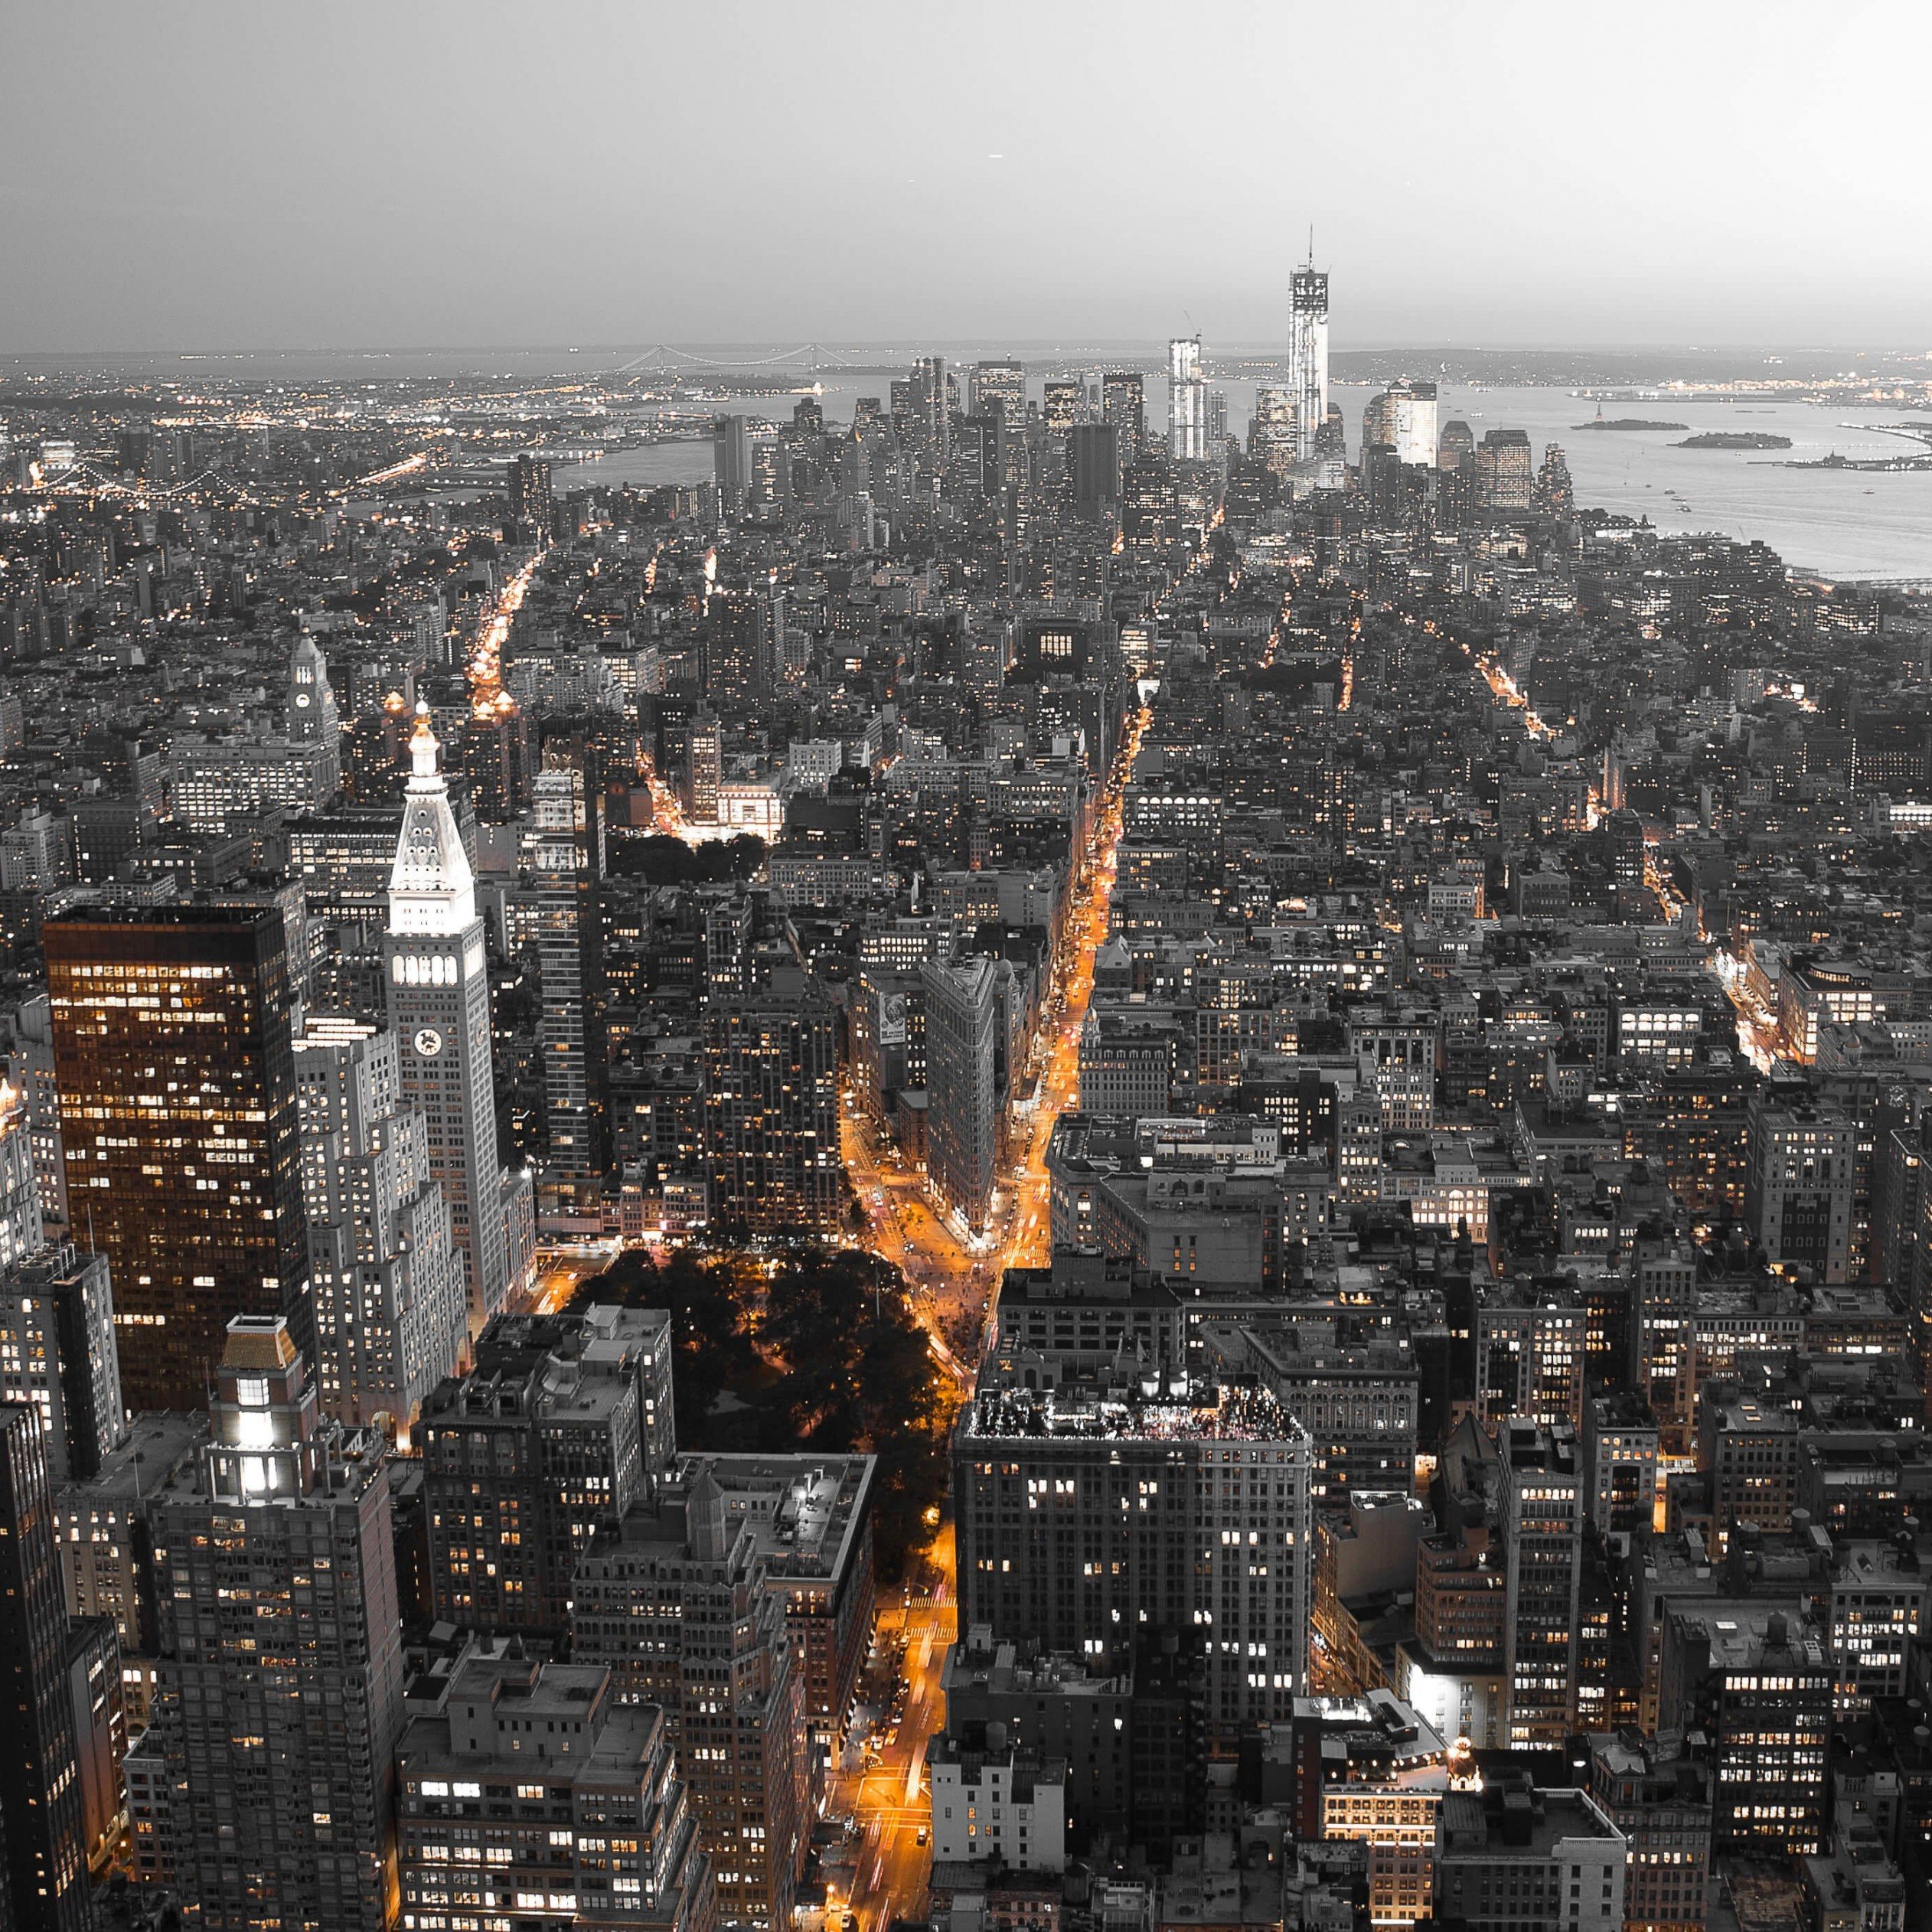 New York City by Night Wallpaper for Apple iPad mini 2